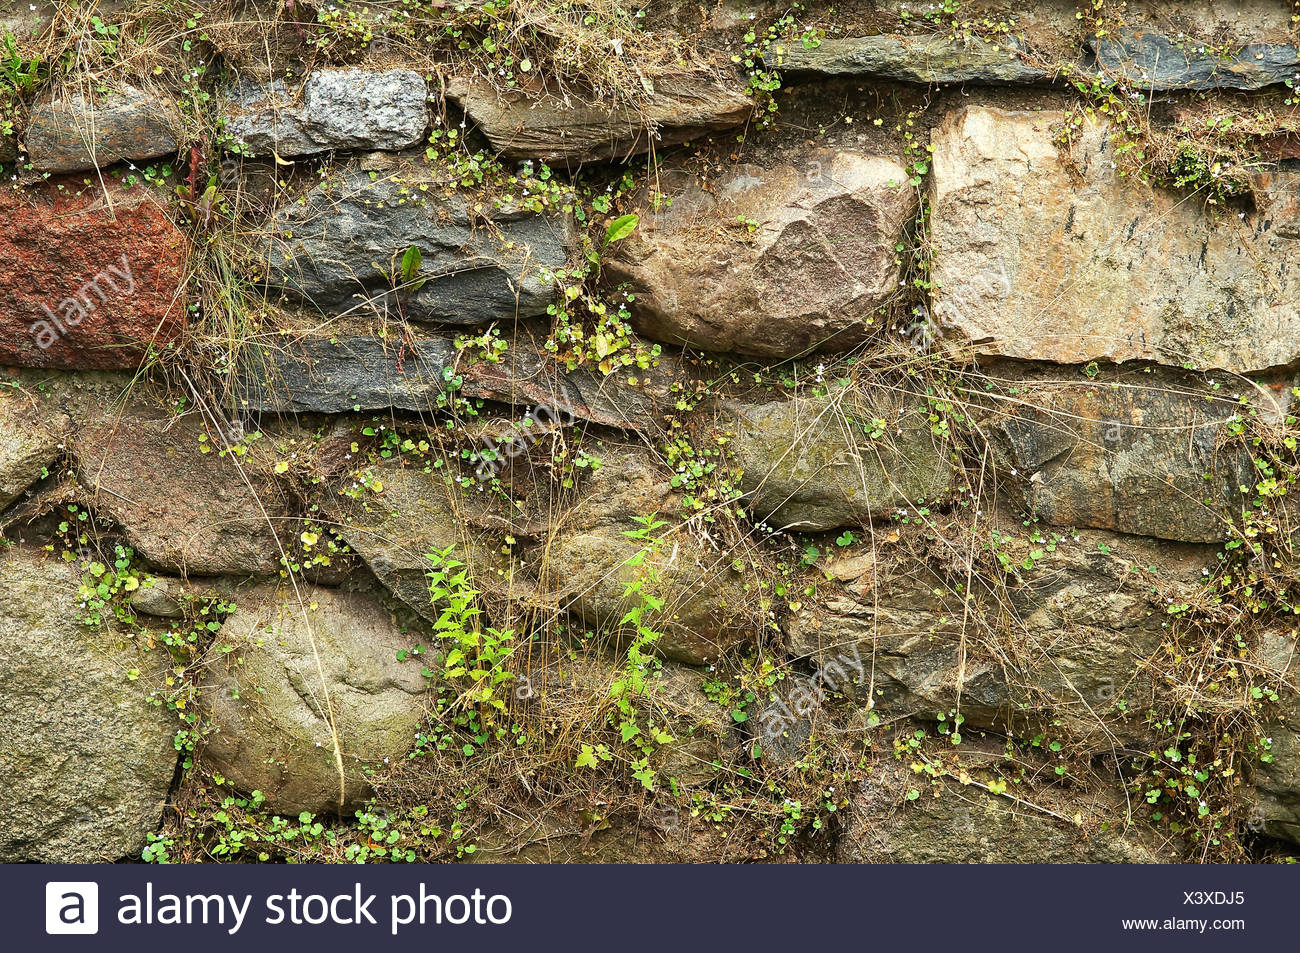 feldsteinmauer / fieldstone wall stock photo: 277791309 - alamy